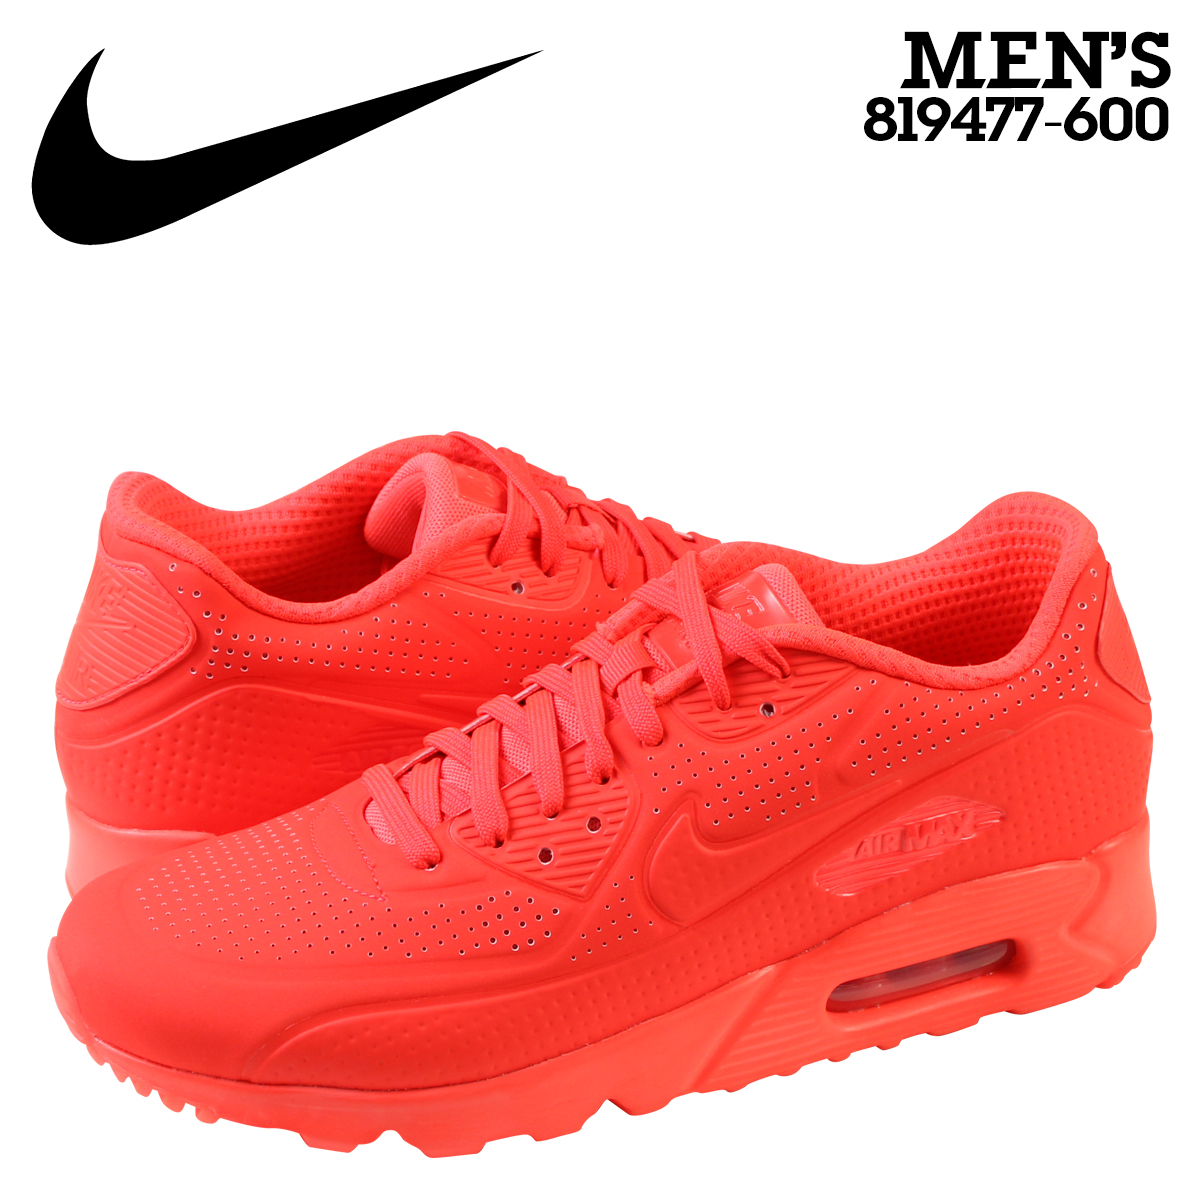 the latest d1fdc 03f61 Nike NIKE Air Max sneakers AIR MAX 90 ULTRA MOIRE Air Max 90 ultra moire  819477-600 Crimson men s shoe Red